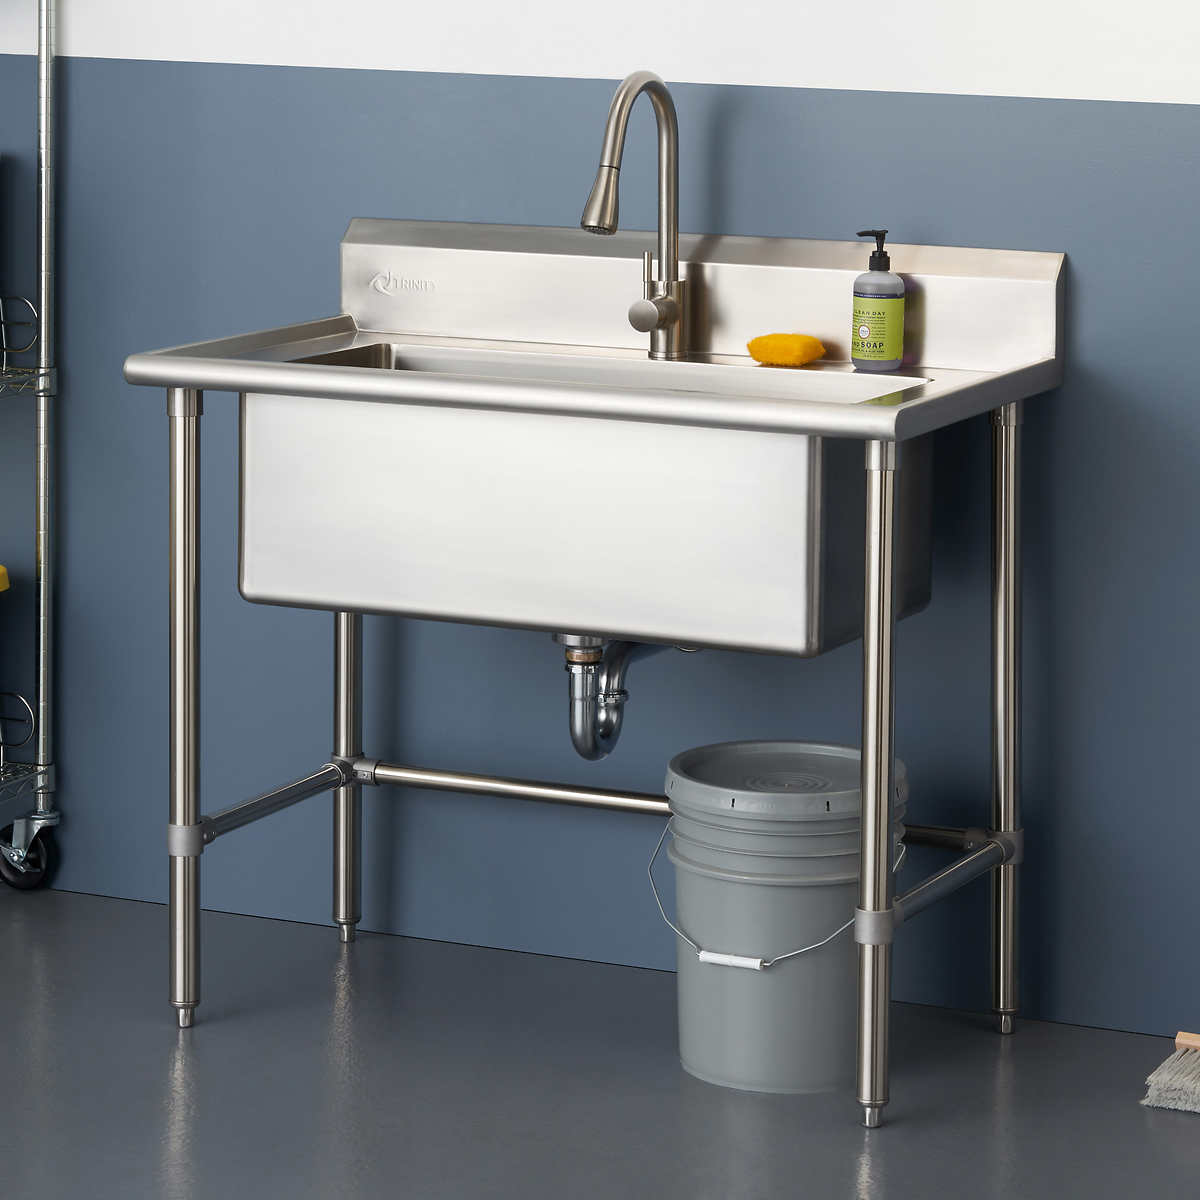 Stainless Steel Utility Sink Costco, Westinghouse Laundry Sink With Cabinet Costco